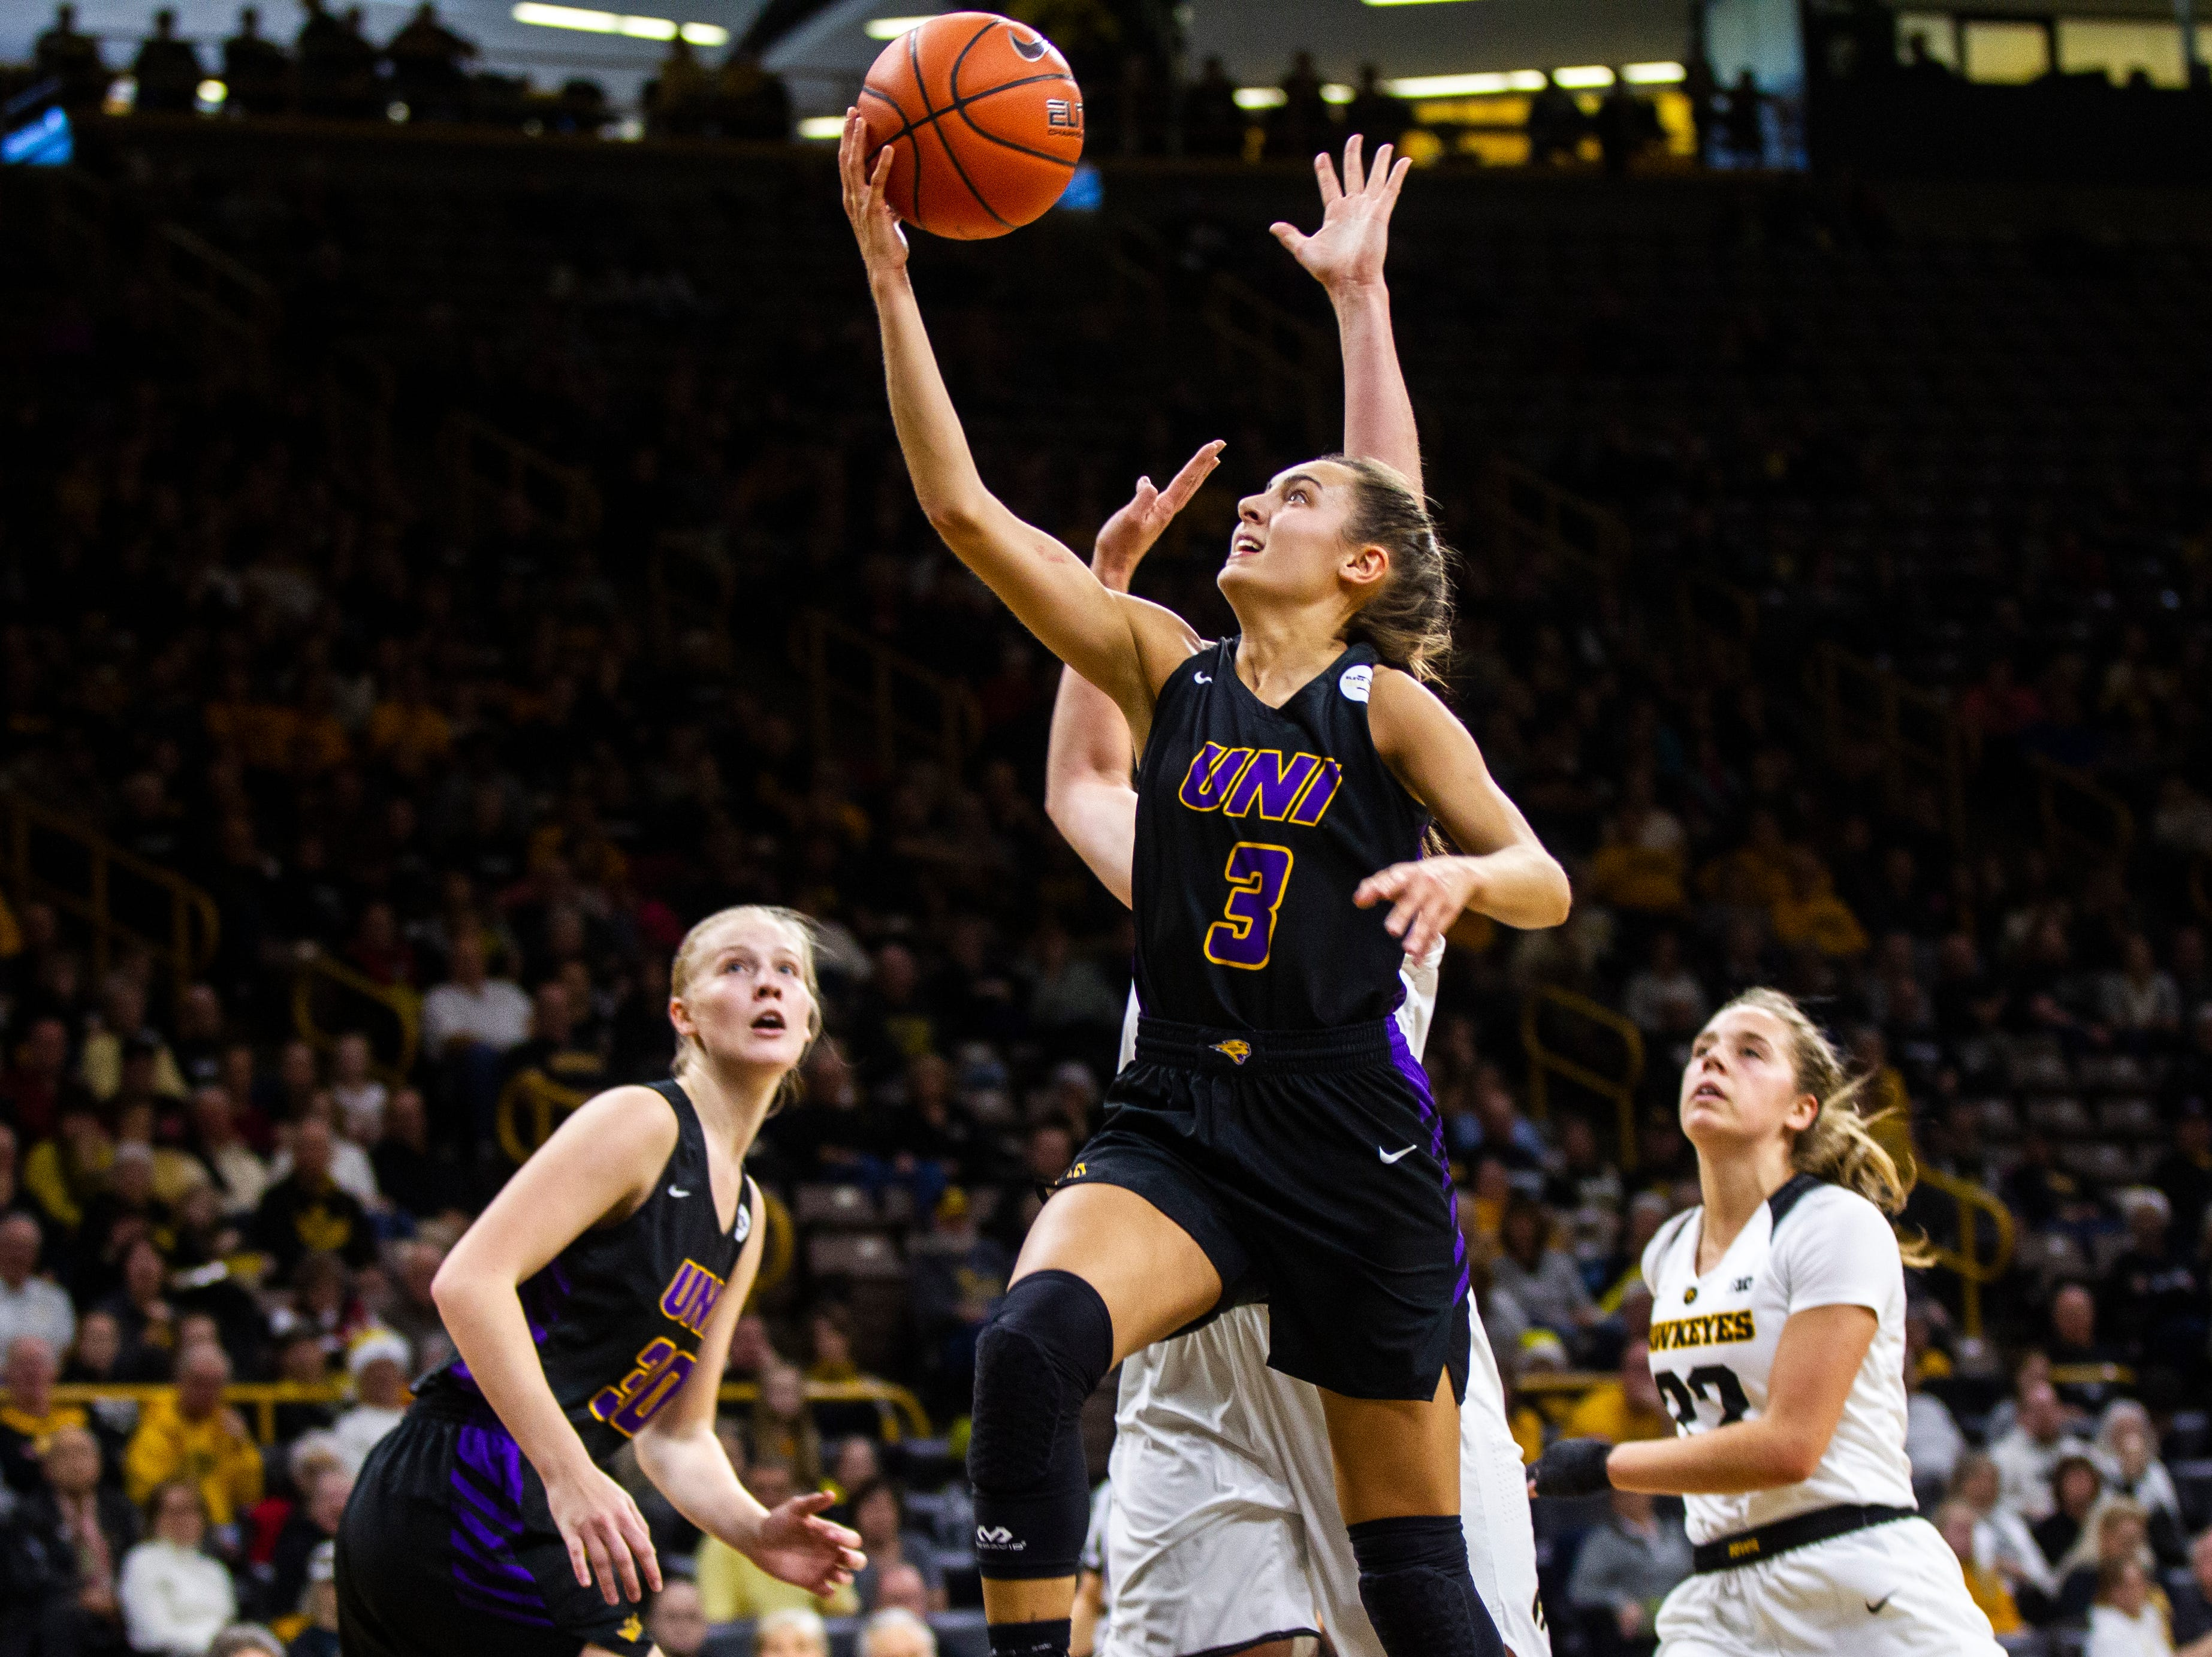 Northern Iowa guard Karli Rucker (3) makes a layup during a NCAA women's basketball game on Sunday, Dec. 16, 2018, at Carver-Hawkeye Arena in Iowa City.